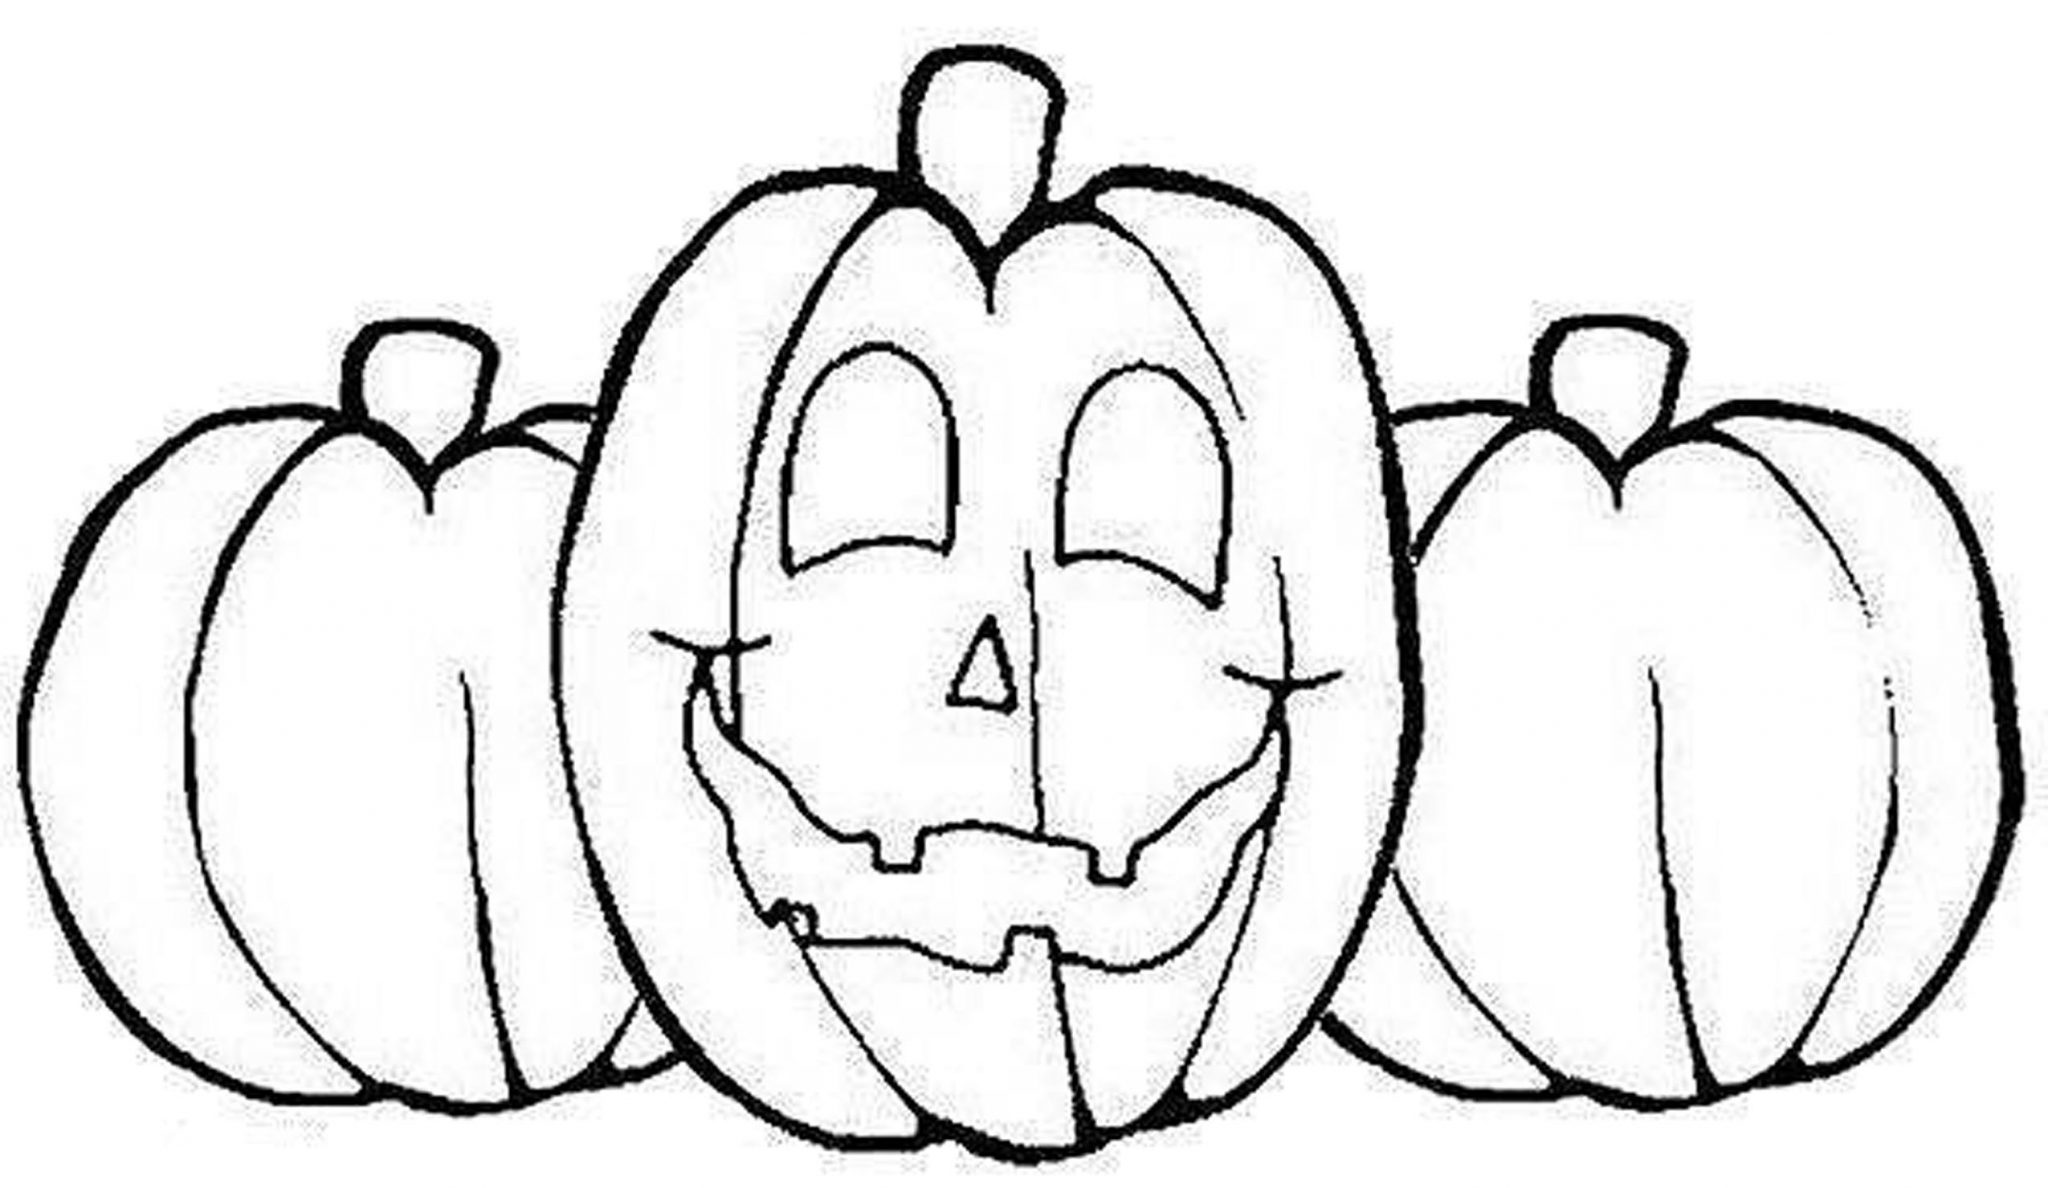 pumkin coloring pages pumpkin coloring pages 3 coloring pages to print coloring pumkin pages